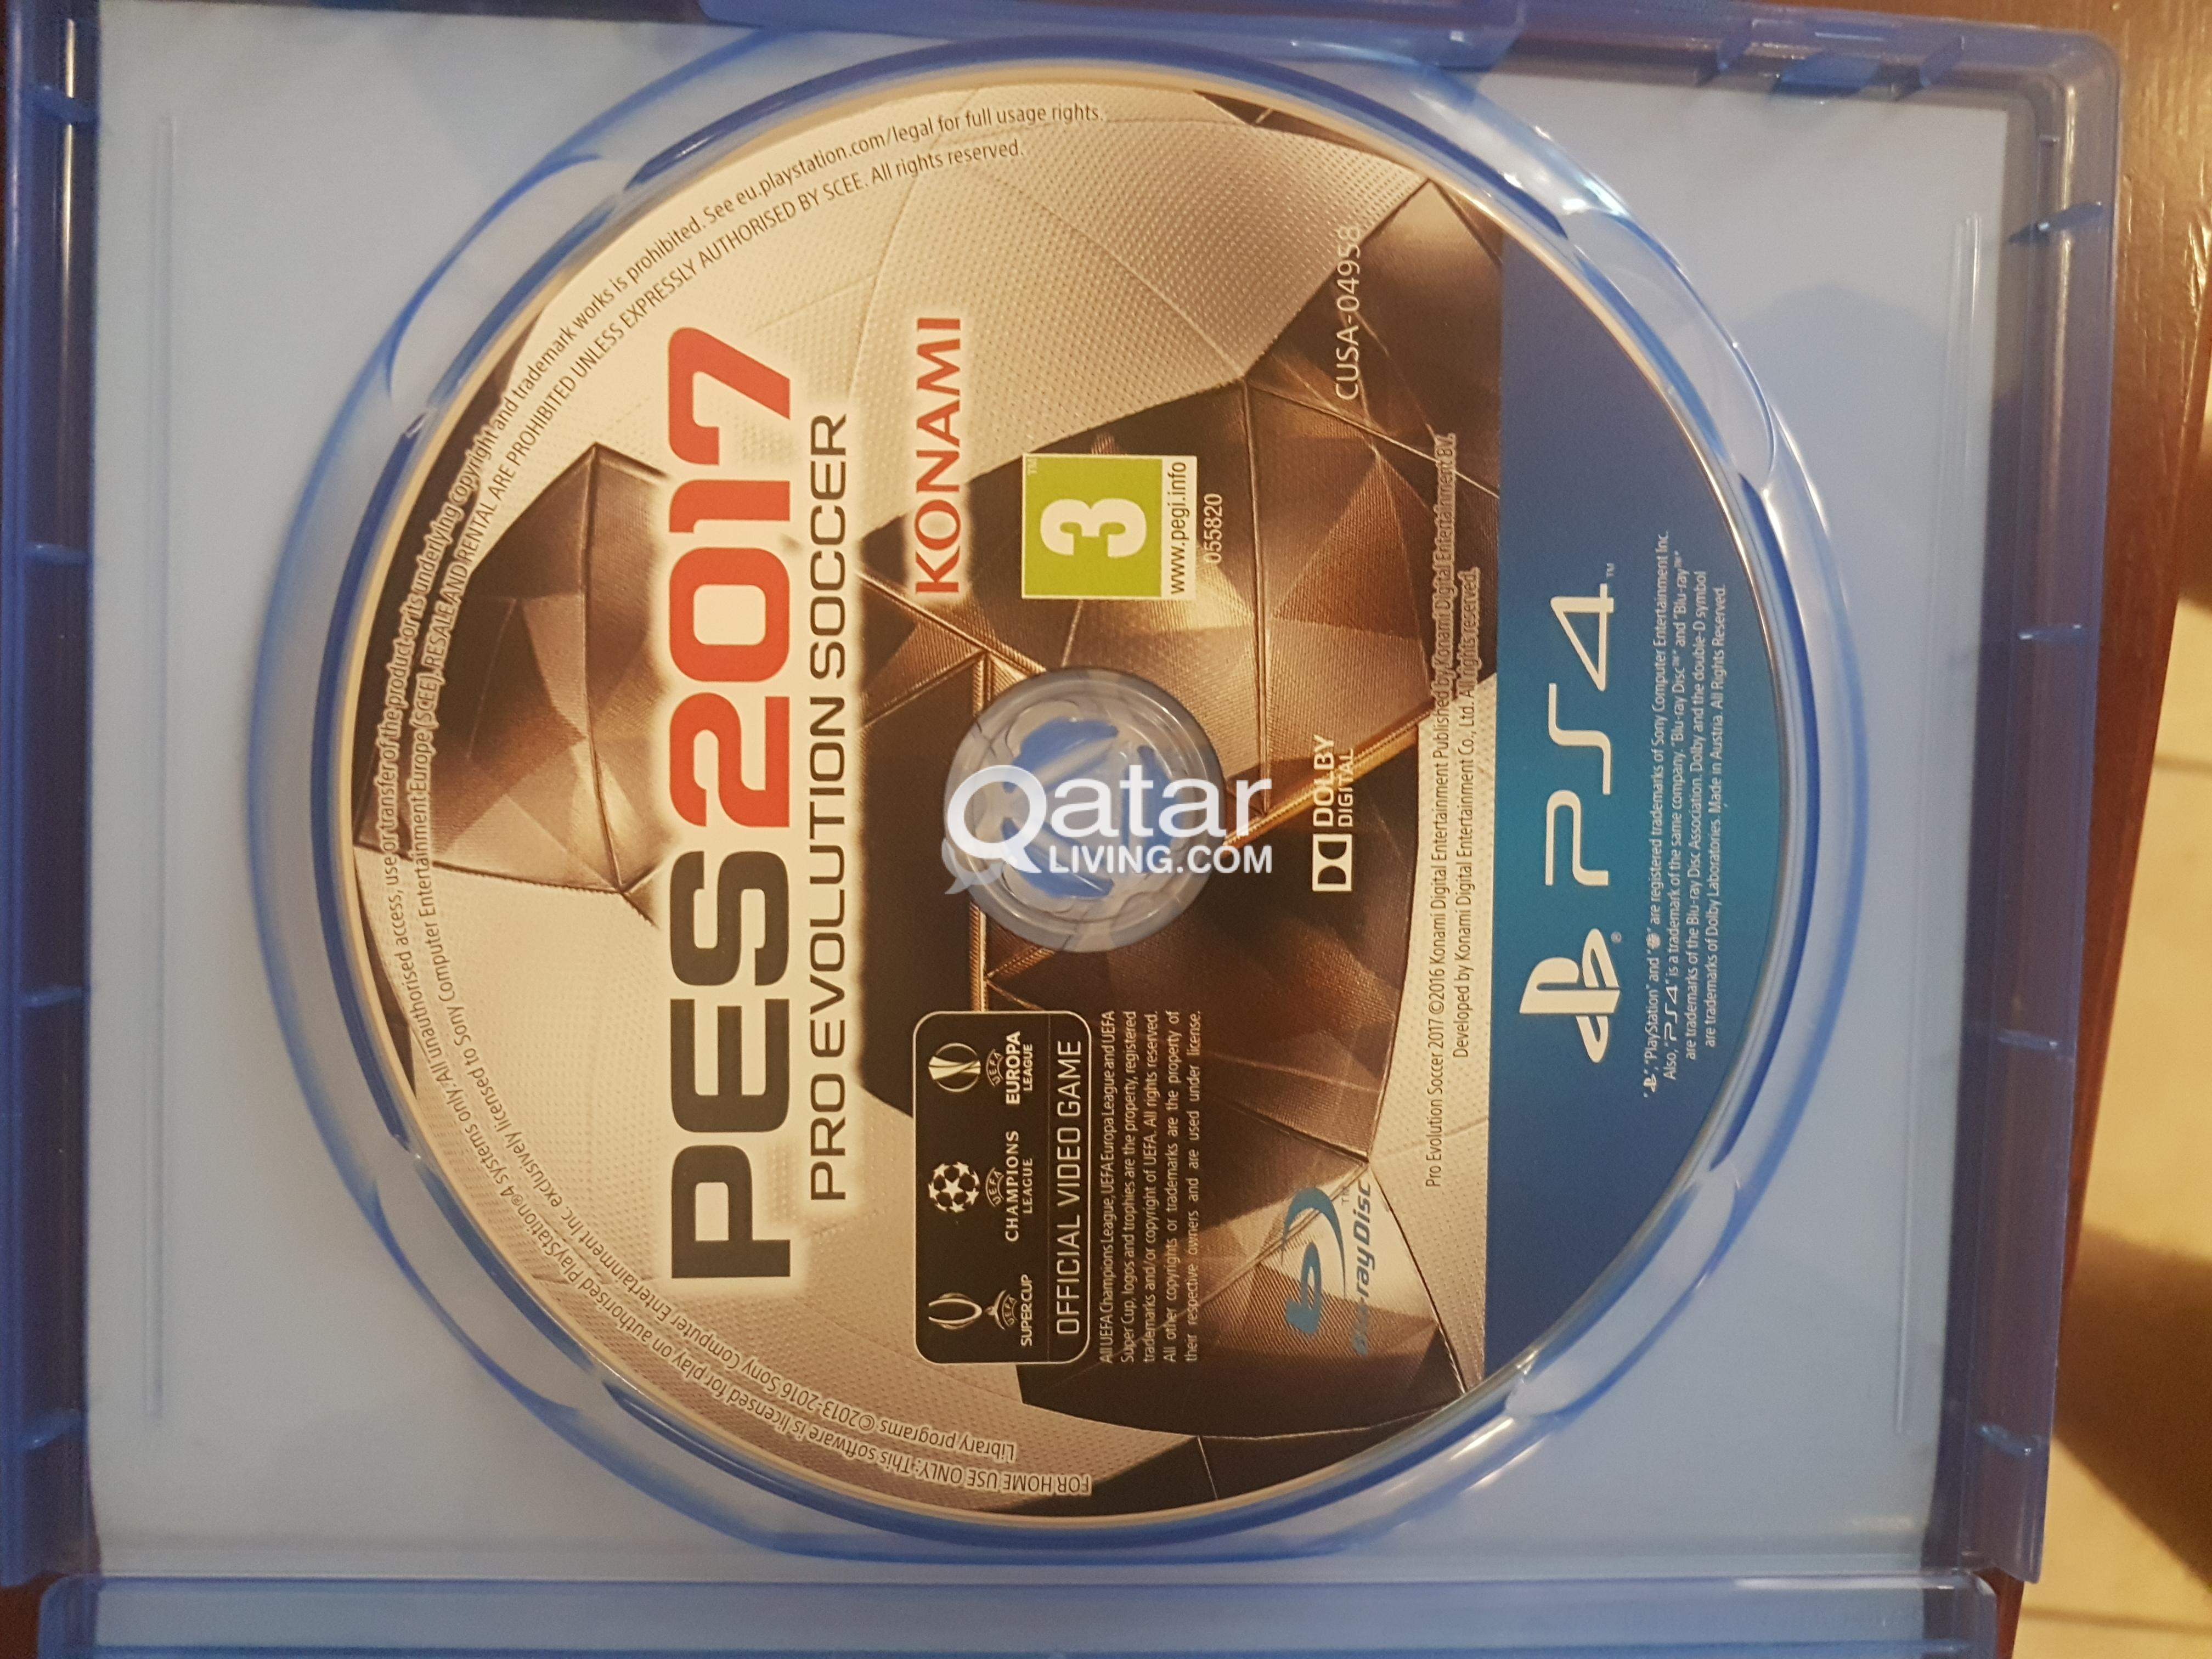 Pes 2017 Ps4 Game Pro Evolution Soccer Qatar Living Sony Title Information Disk For Playstation 4